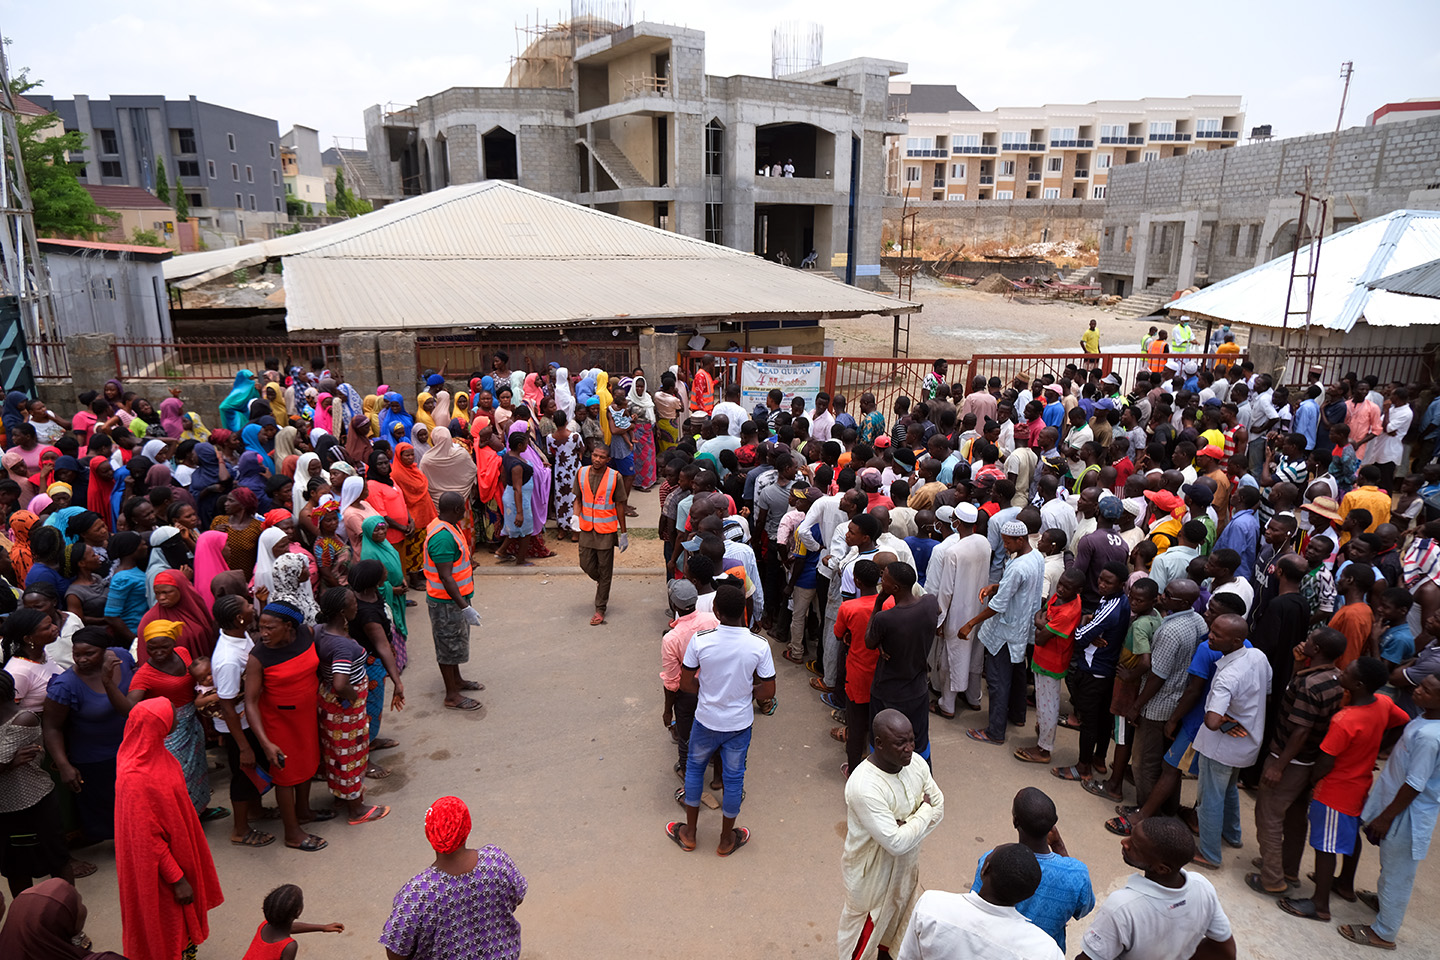 People gather to receive food aid from Al-Habibiyah Food Bank Programme following a 14-day lockdown aimed at limiting the spread of coronavirus disease, in Abuja, Nigeria April 3, 2020. Photo: Sodiq Adelakun / Channels TV